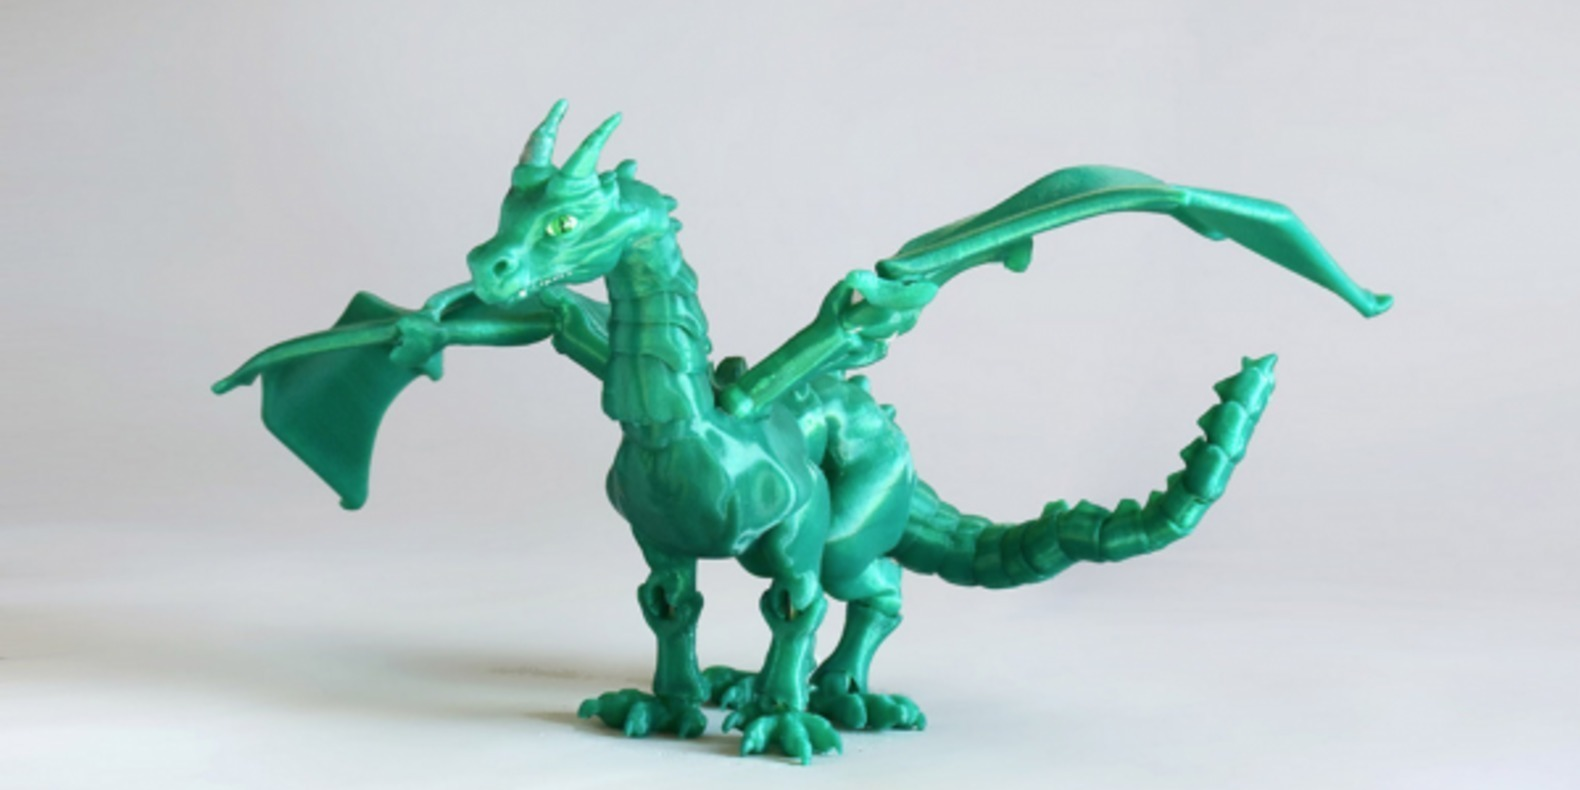 http://fichier3d.fr/wp-content/uploads/2016/02/Braq-dragon-jointed-3D-printed-impression-3D-fichier-STL-sonia-verdu-BQ-BQlabs-2.png